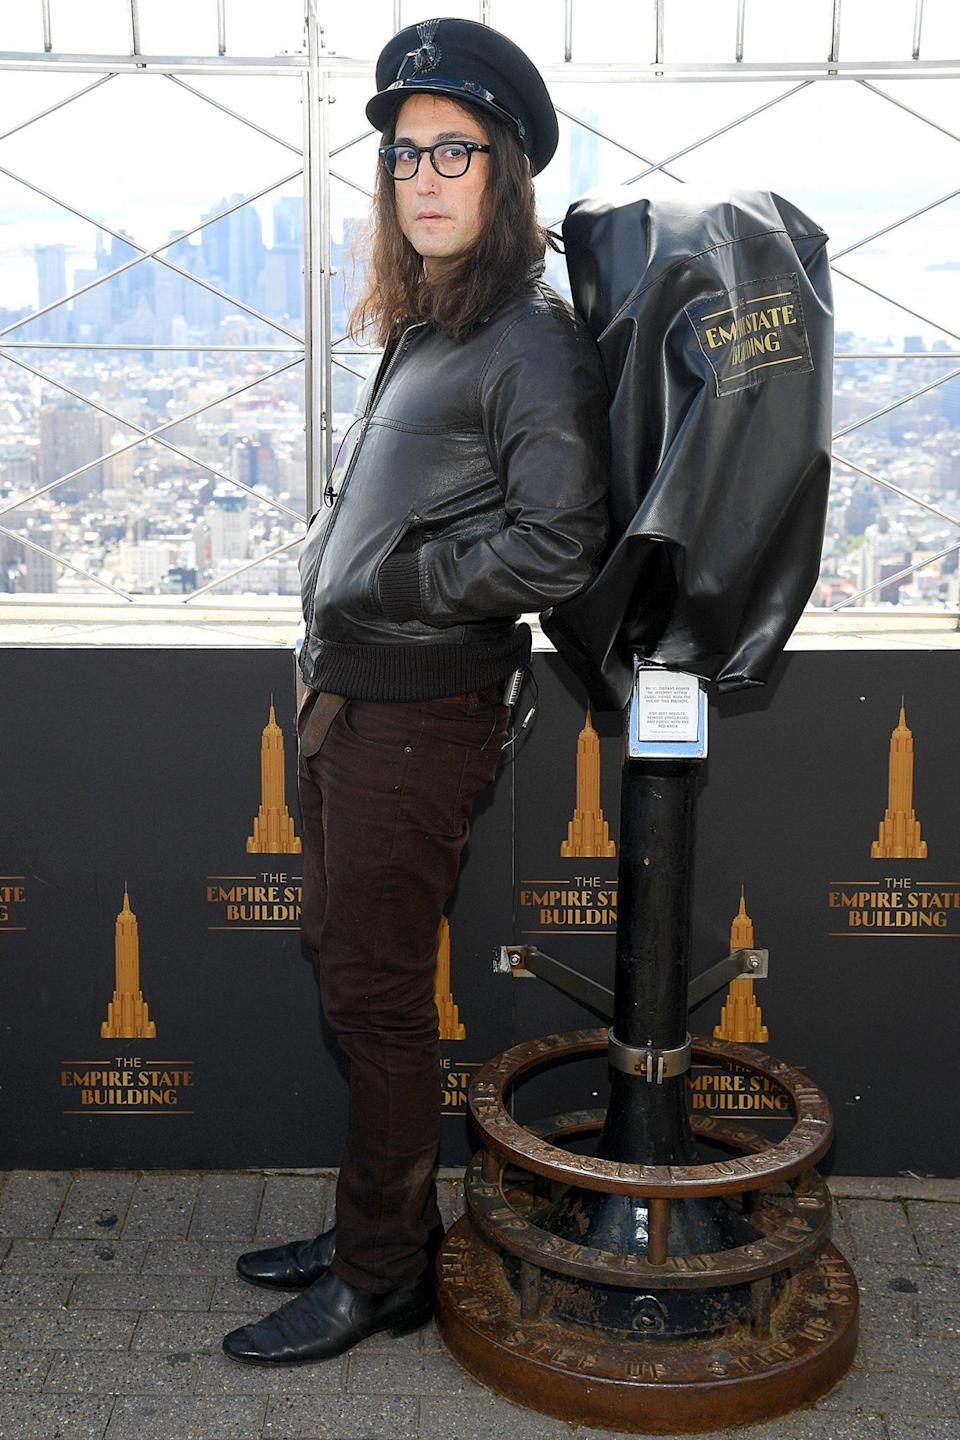 <p>Sean Ono Lennon attends the Empire State Building Lighting Ceremony in honor of his late dad John Lennon's 80th birthday on Thursday in N.Y.C. </p>